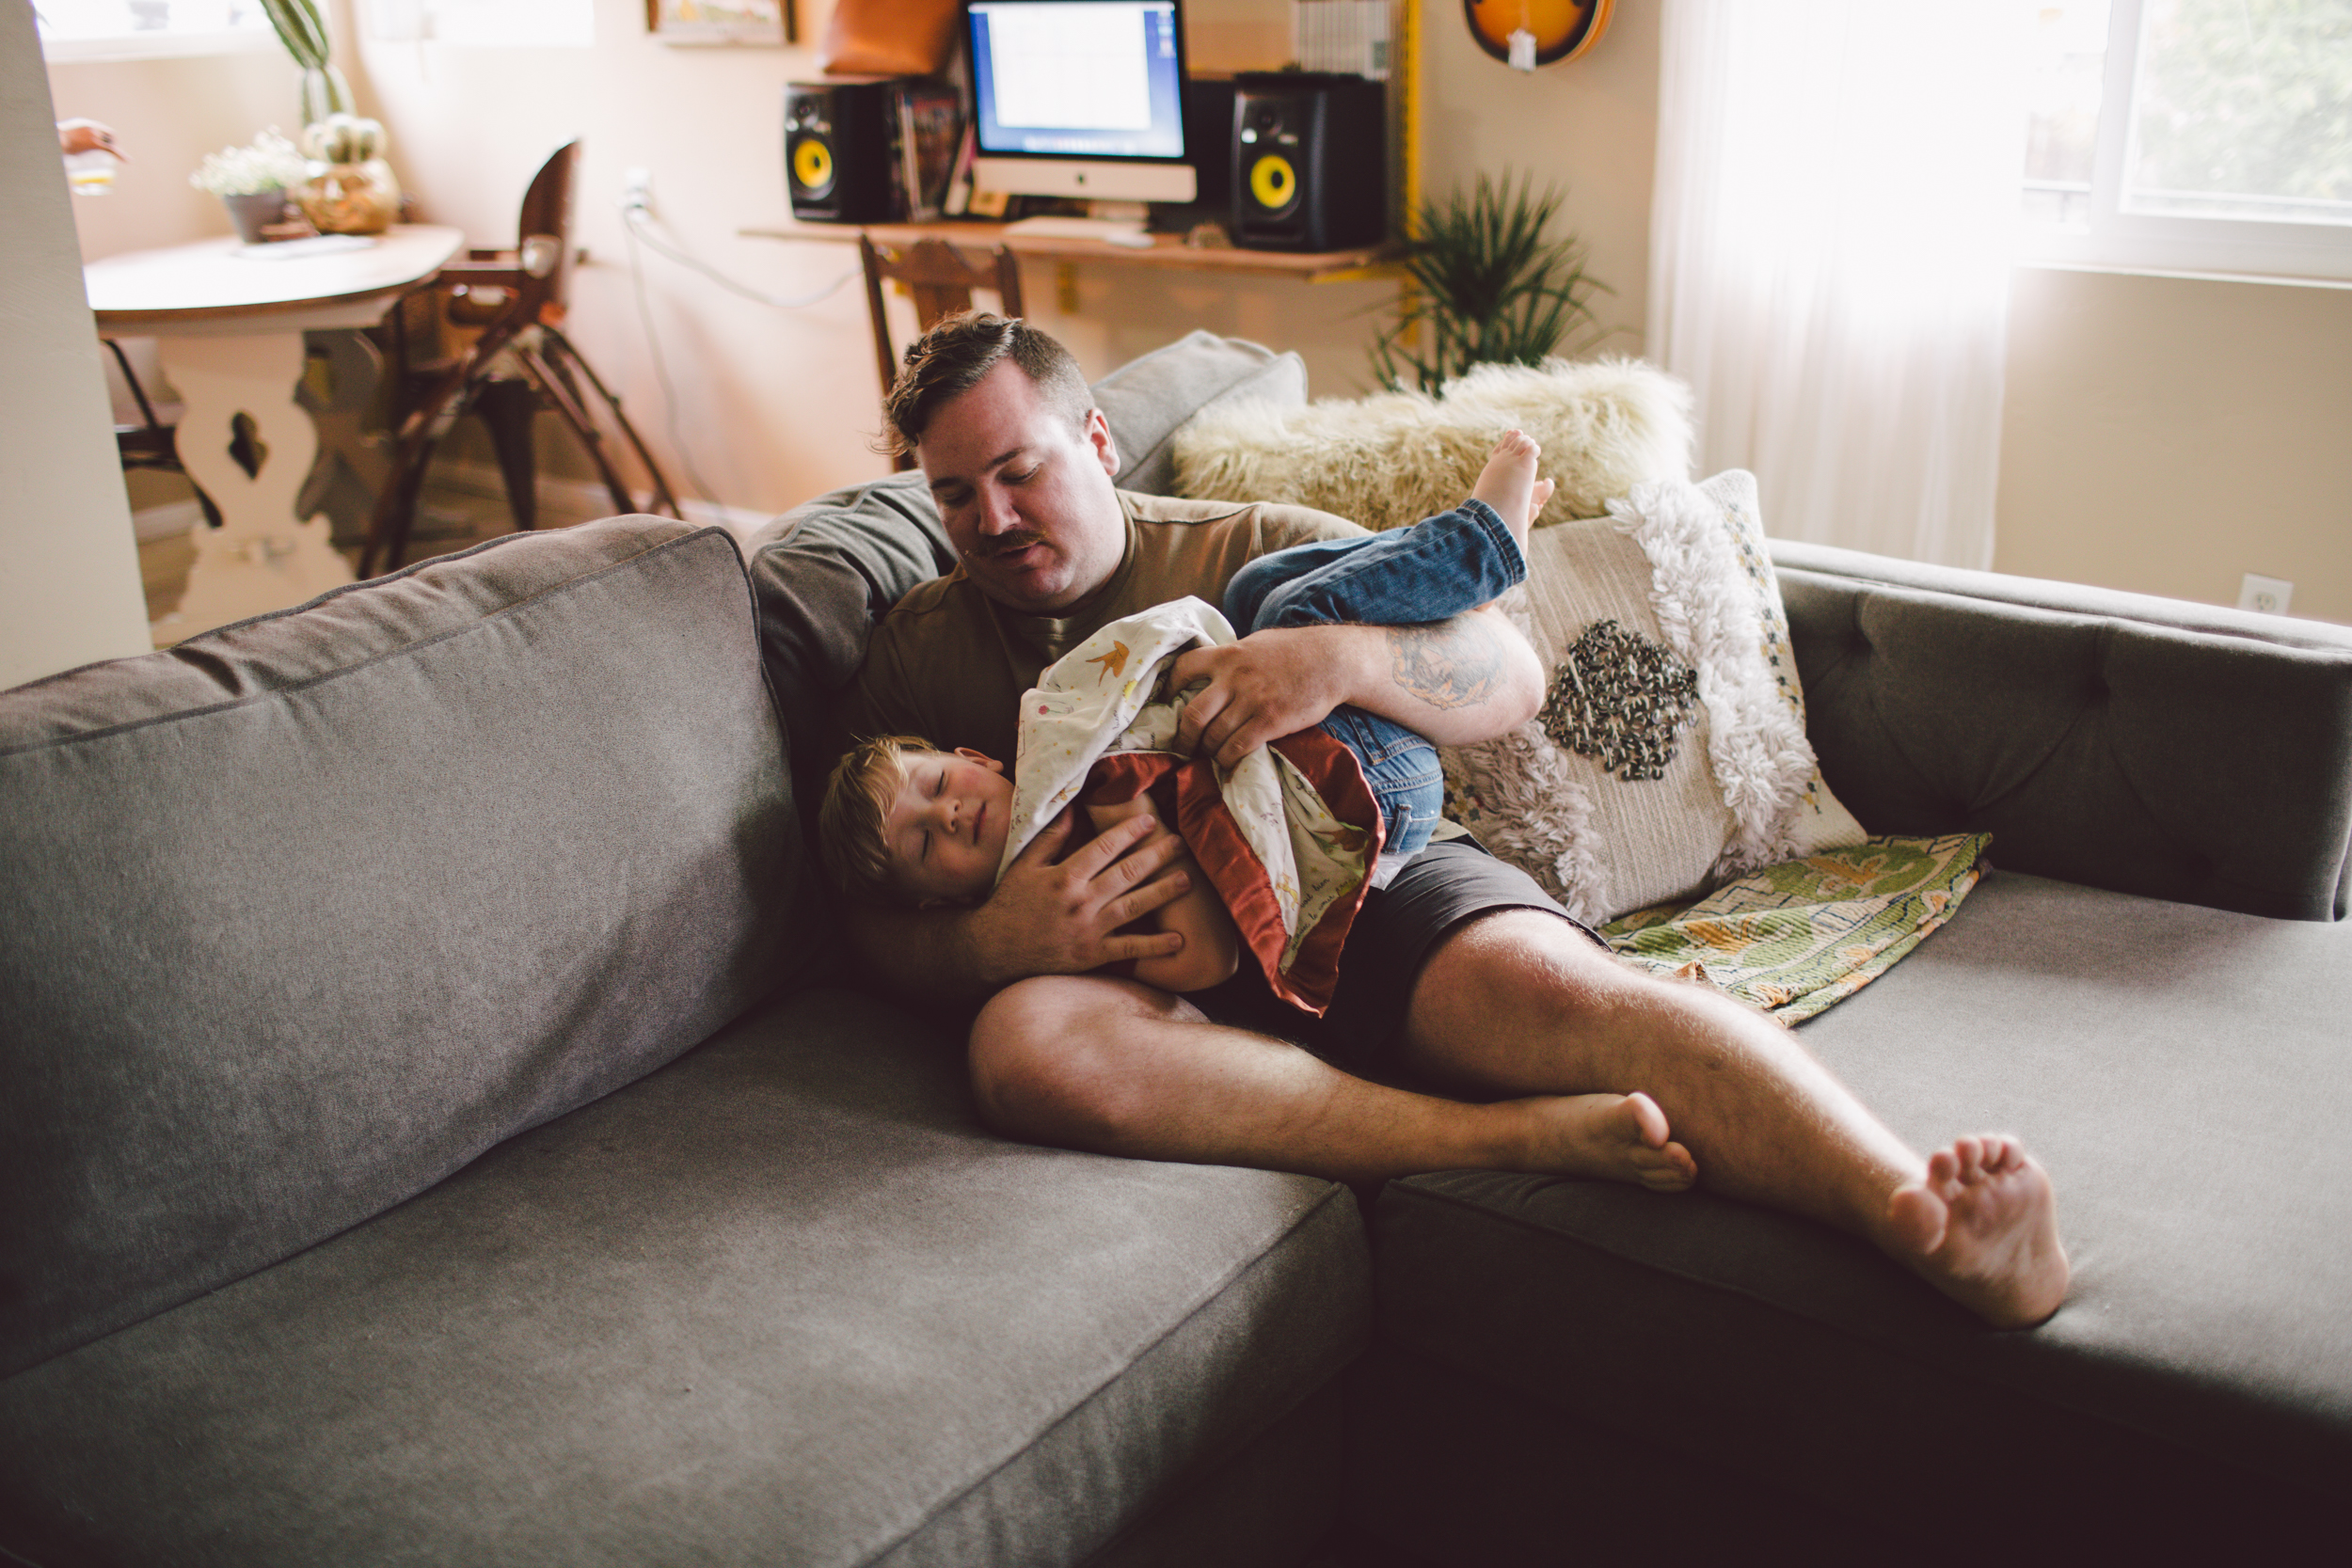 fatherhood-san diego lifestyle-documentary photographer-